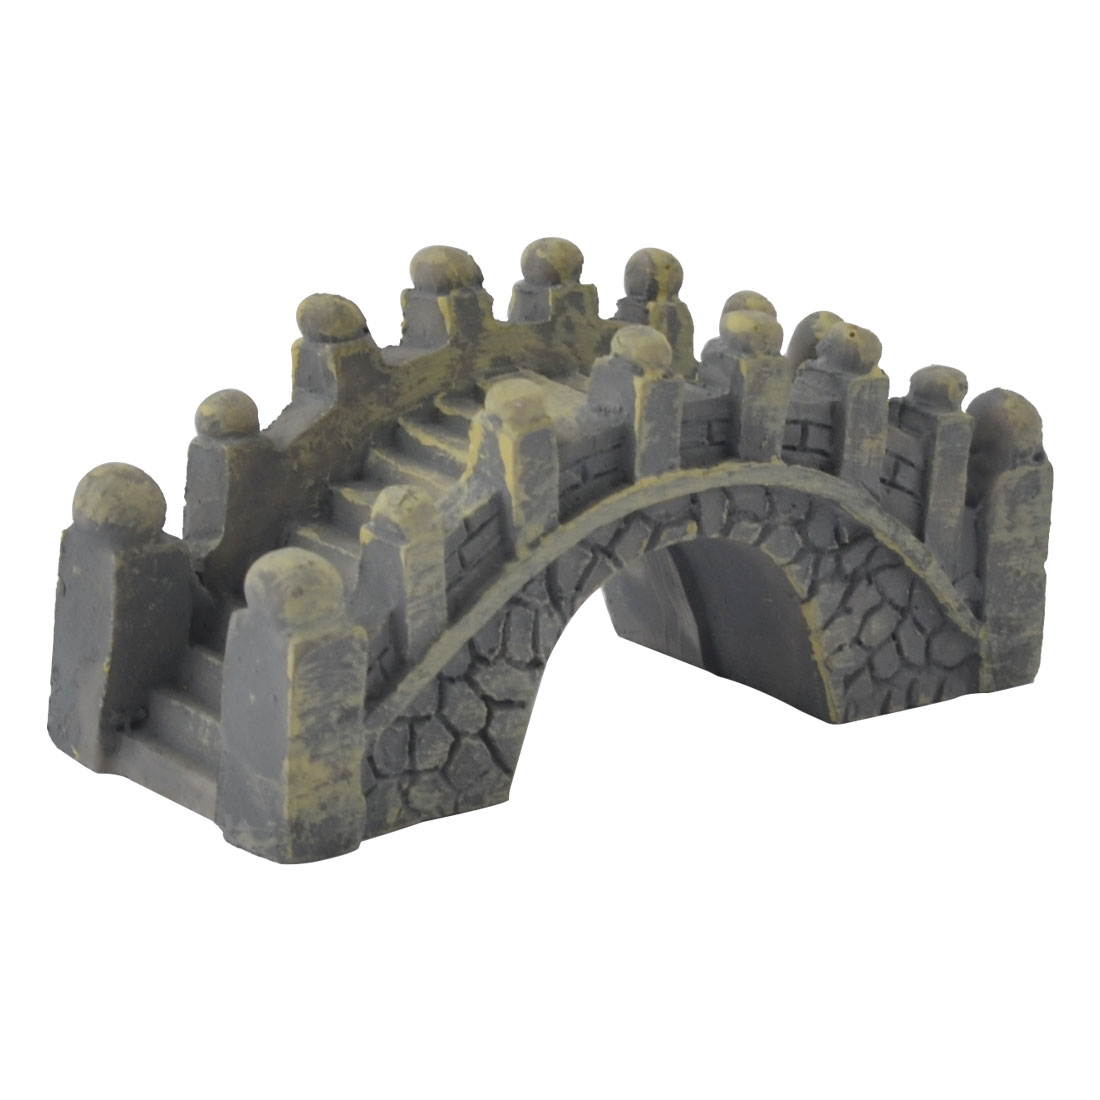 Home Office Emulational Resin Mini Bridge Design Desktop Decoration Gray